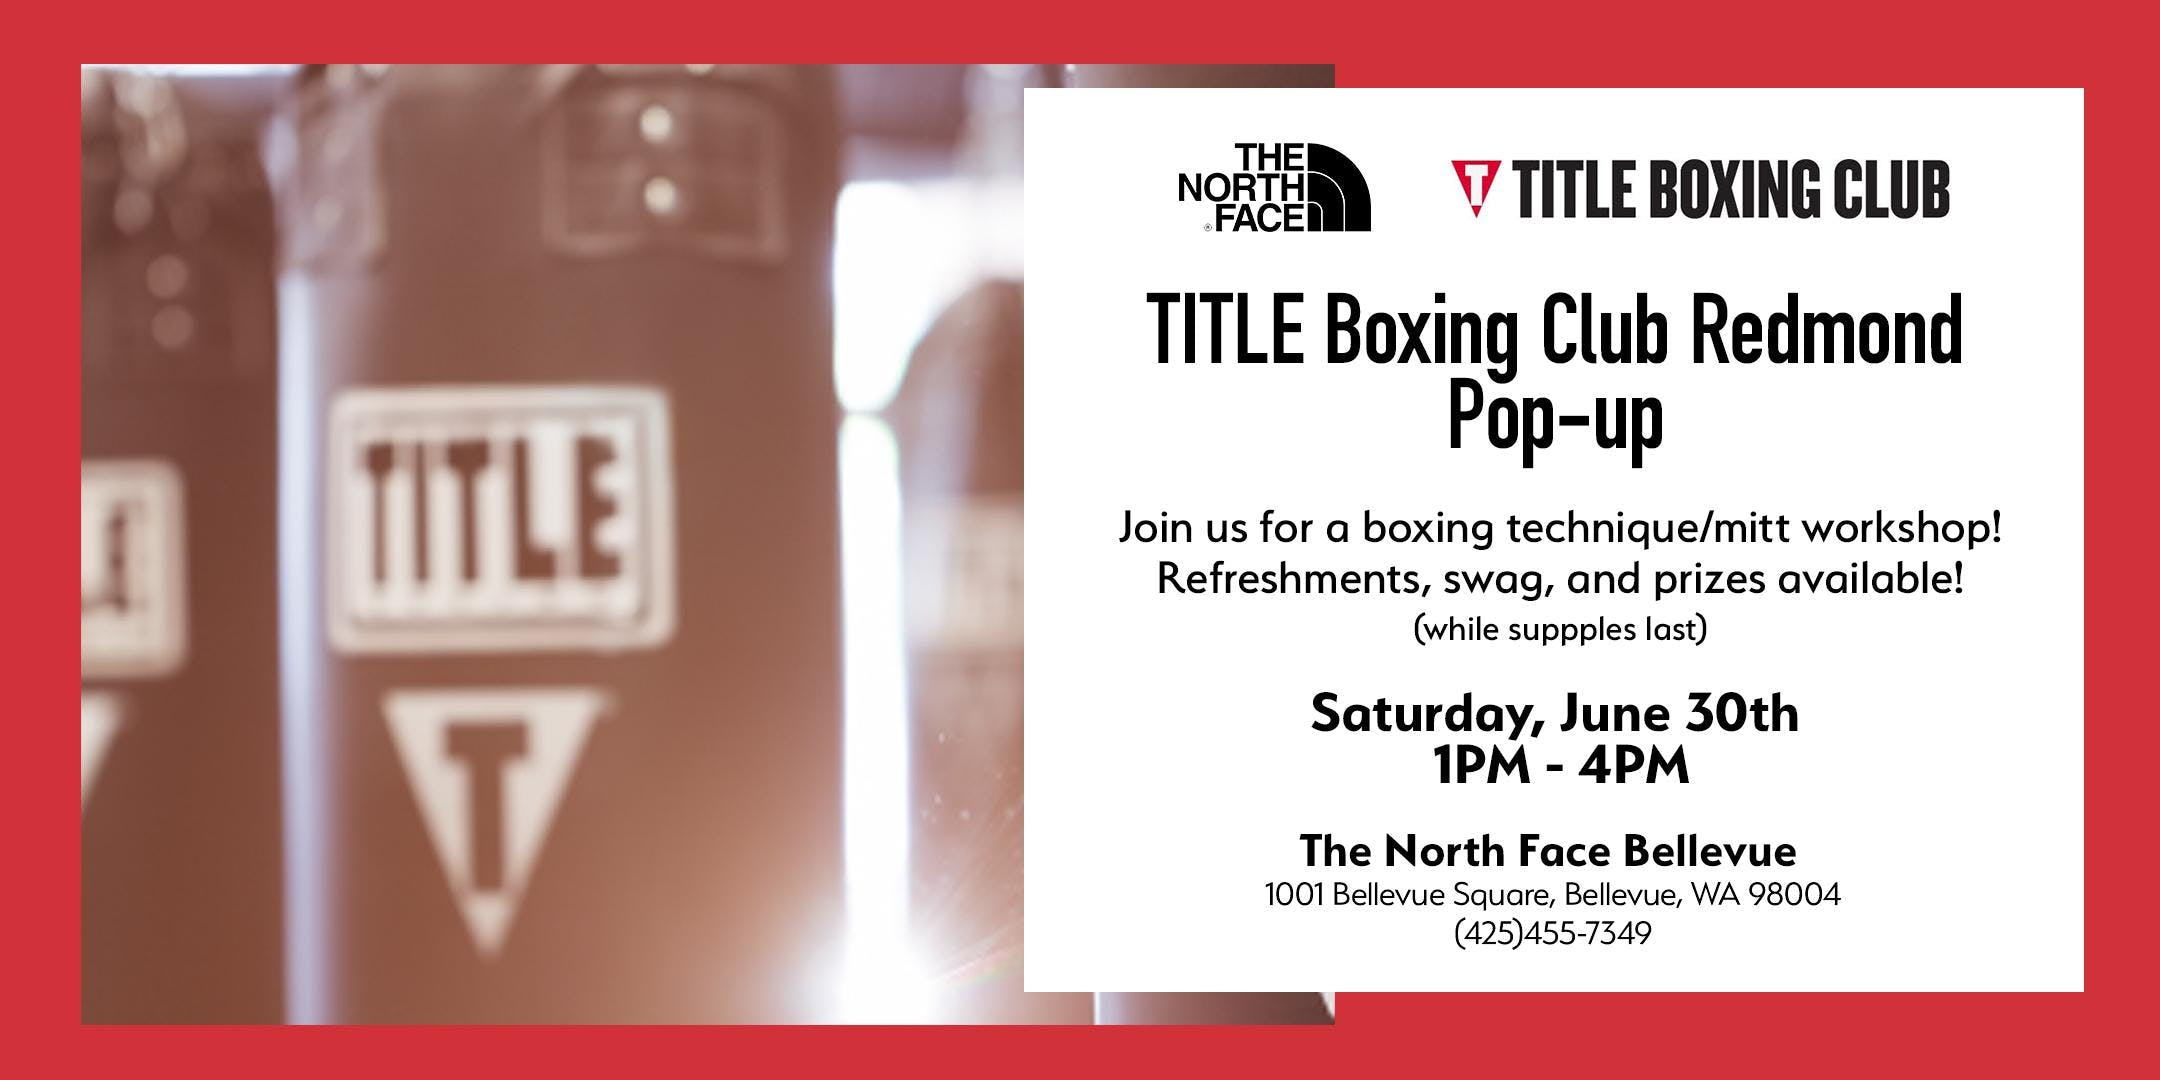 TITLE Boxing Club Pop-up Event at The North Face Bellevue